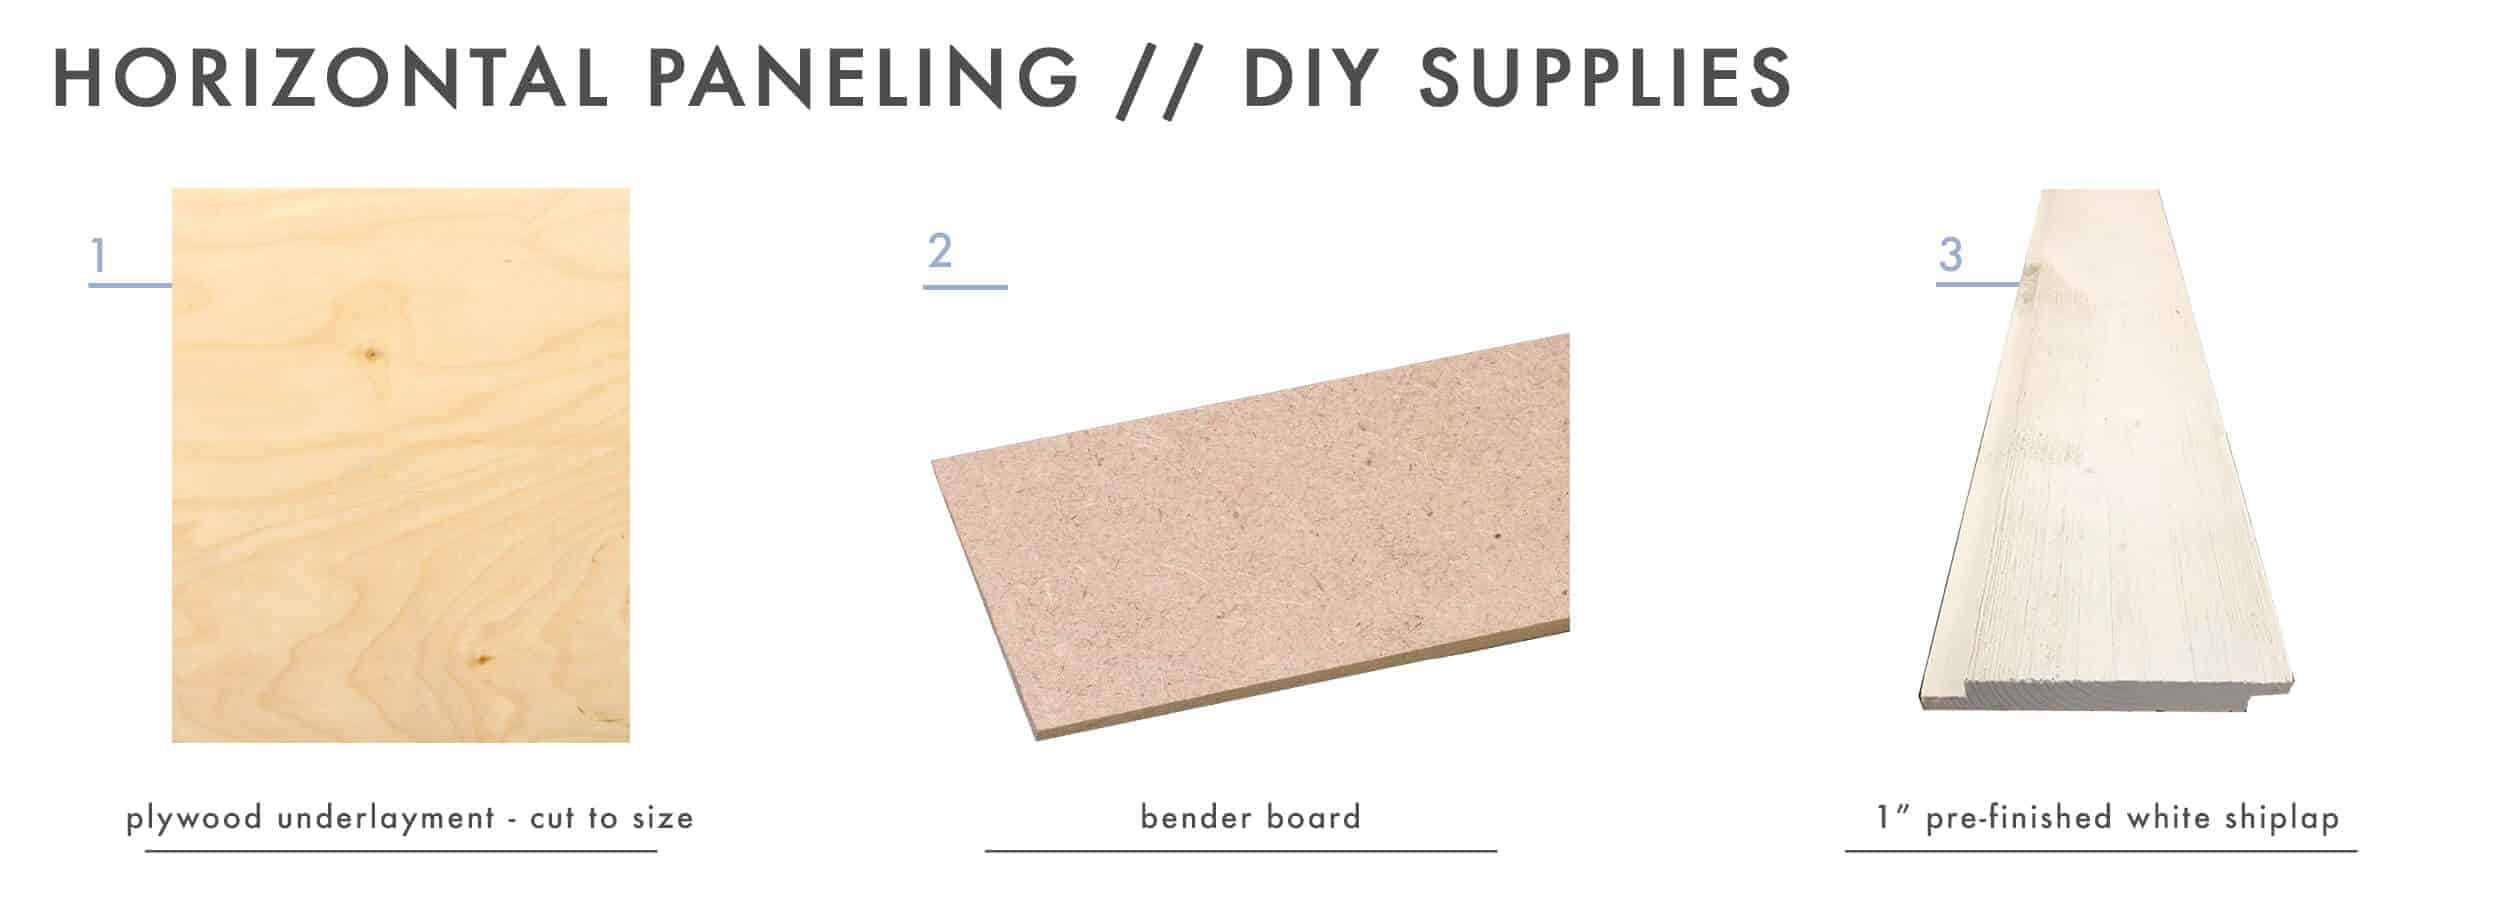 How To Add Character And Charm To Boring Architecture And Houses Horizontal Paneling Diy Supplies 01